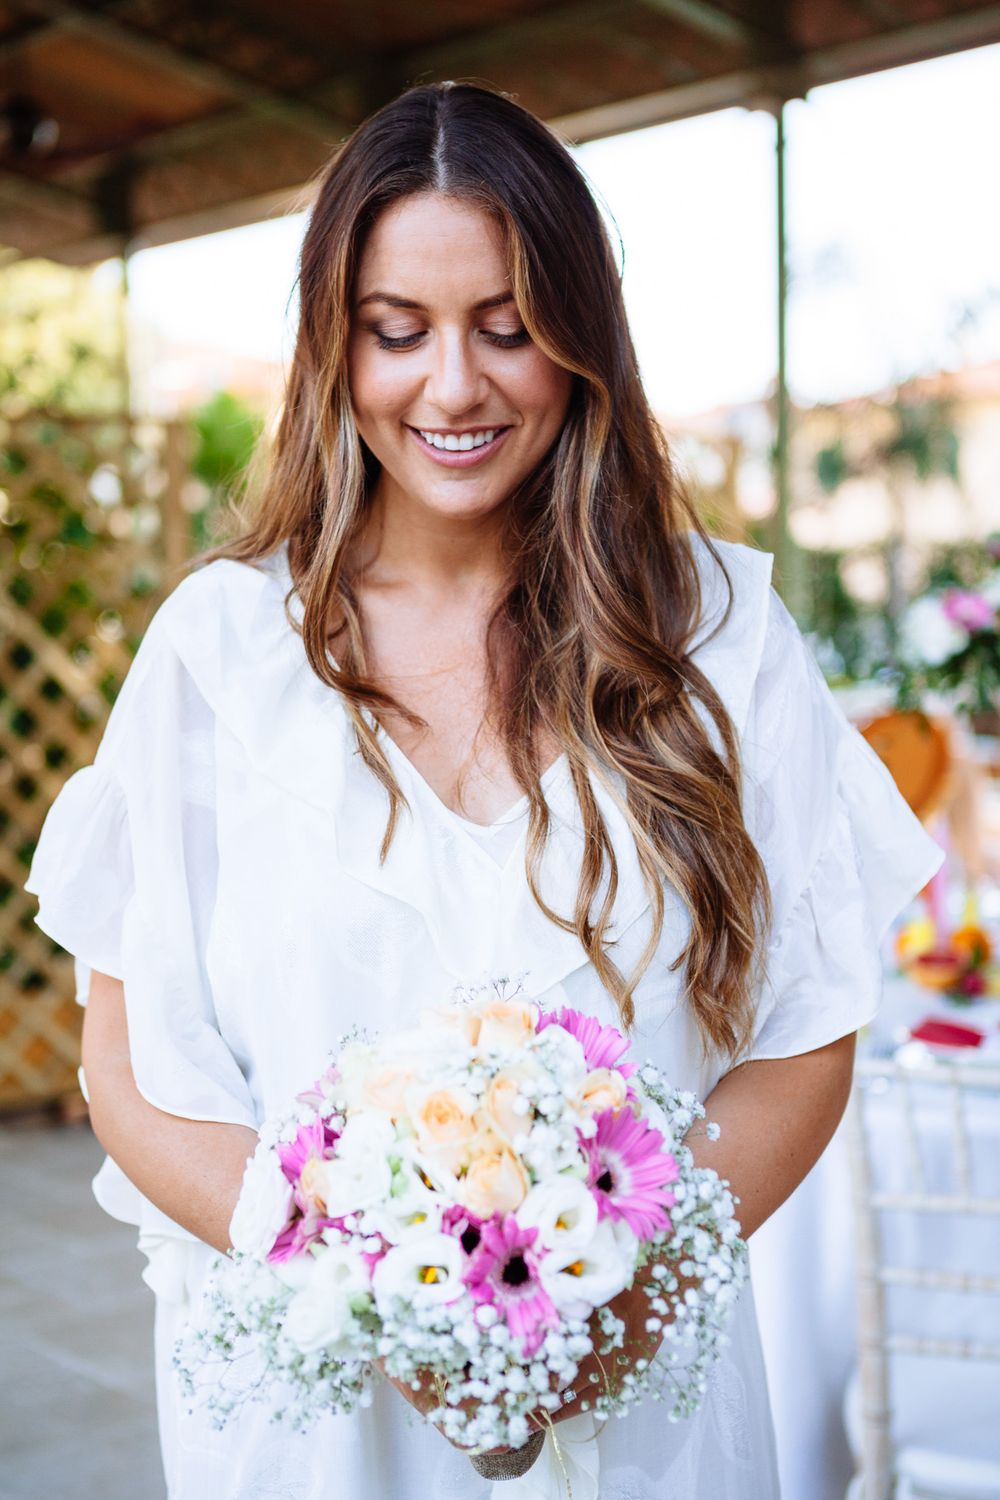 relaxed and natural hair and makeup inspiration for a small wedding in tuscany